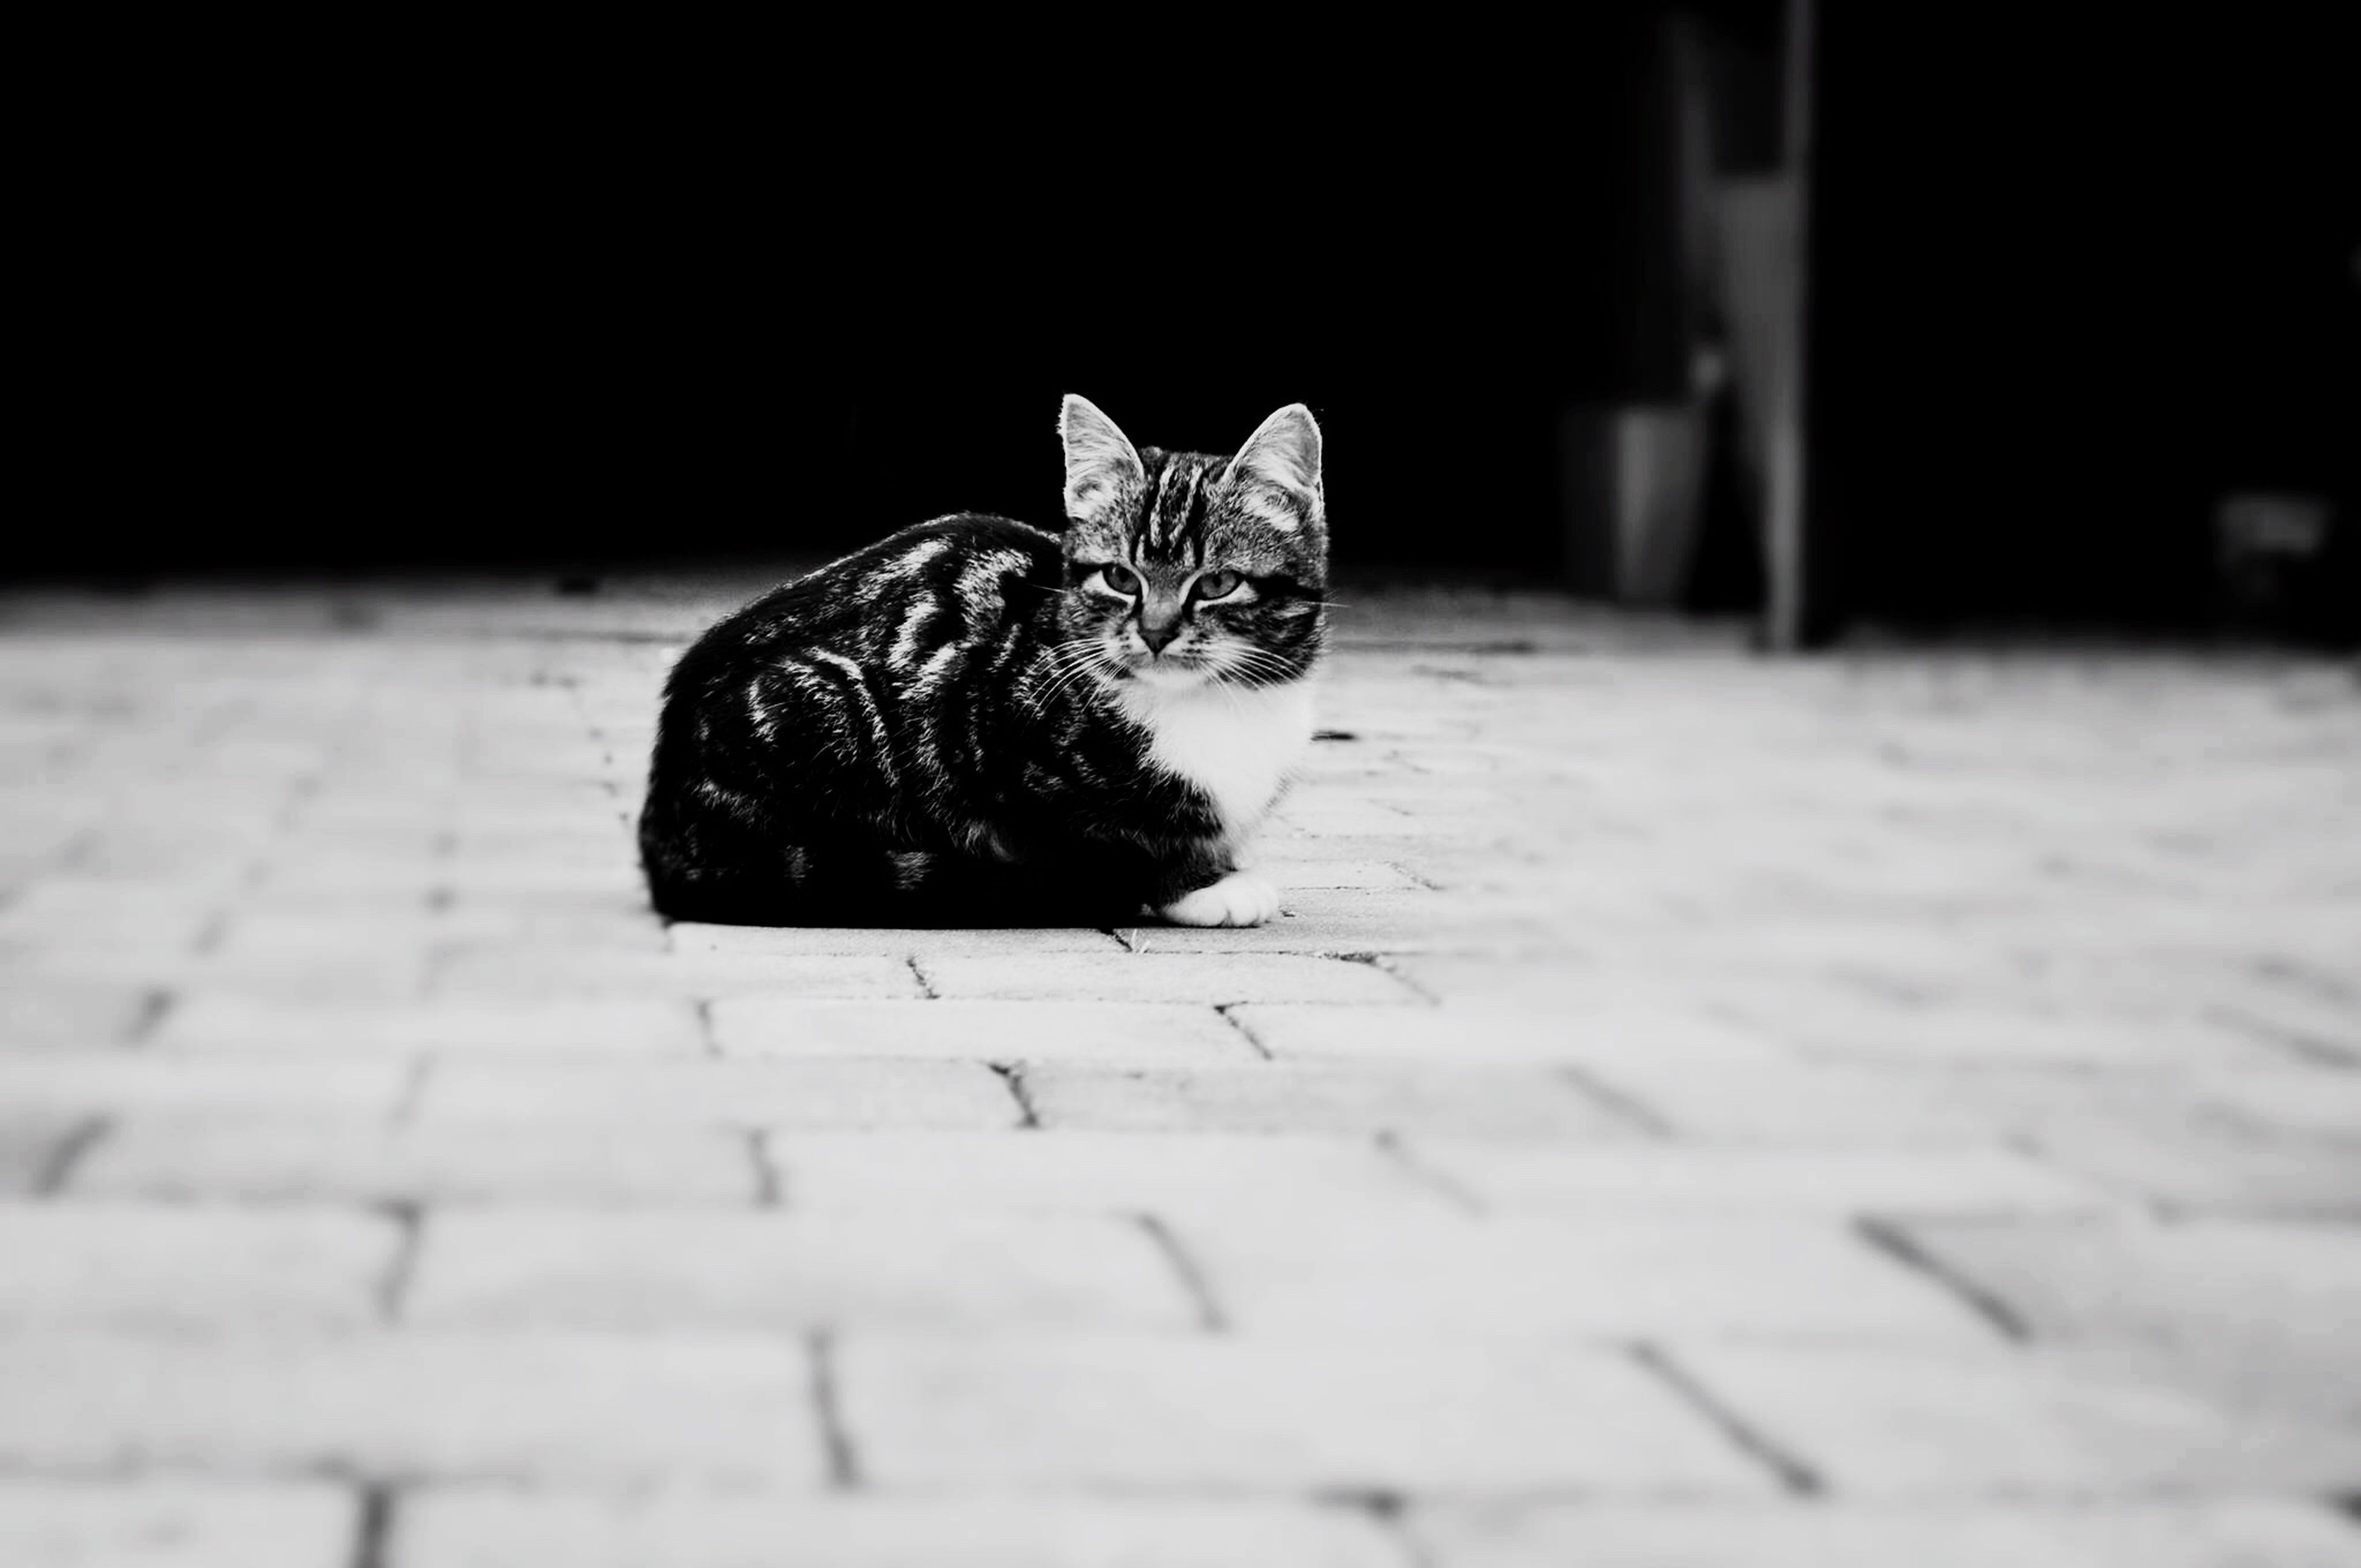 selective focus, table, indoors, surface level, domestic cat, no people, close-up, flooring, white color, cat, focus on foreground, relaxation, absence, still life, floor, empty, day, chair, home interior, wood - material